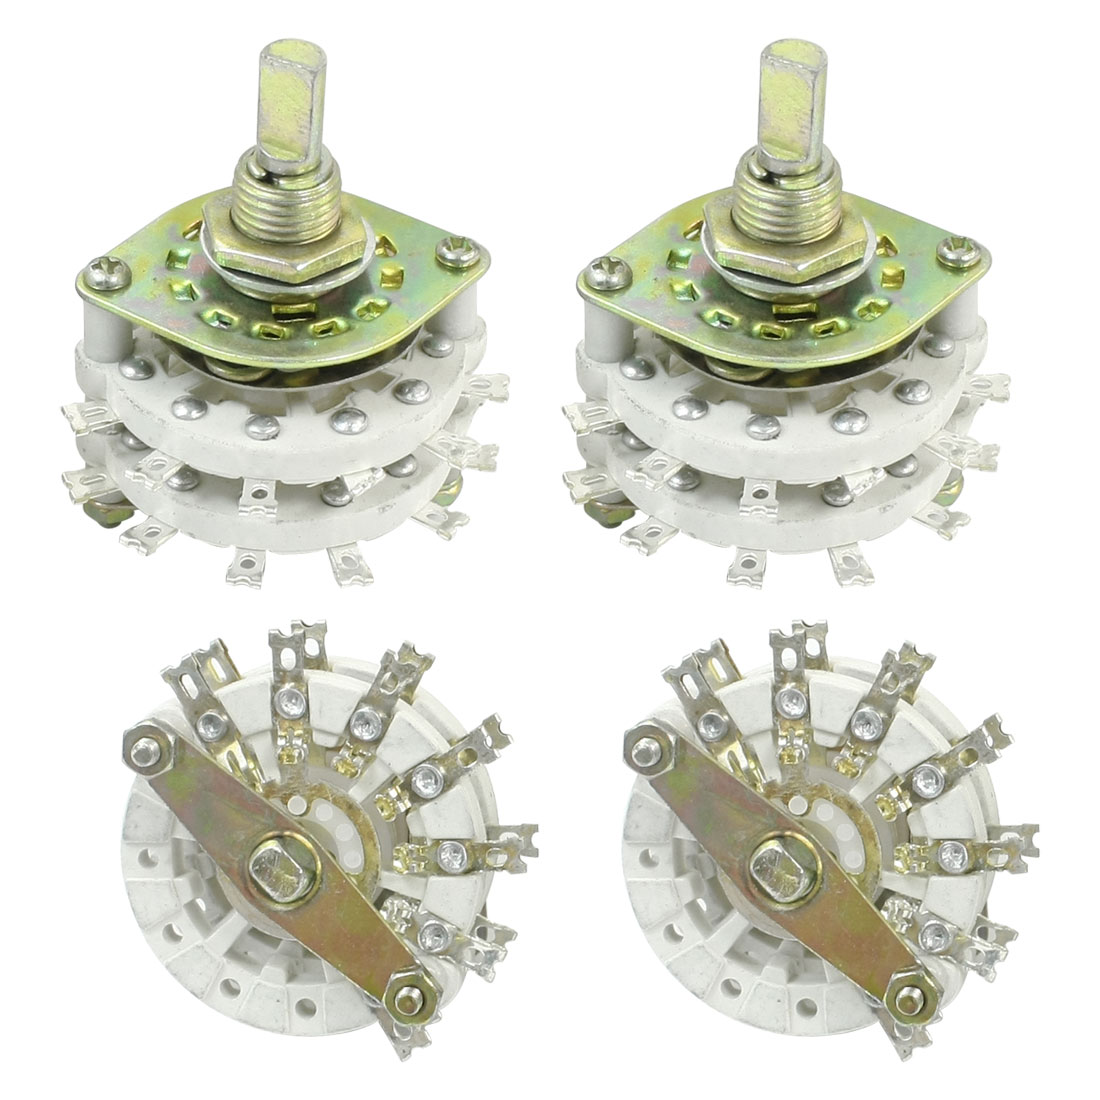 4PCS Band Channael Rotary Switch 2P6T 2 Pole 6 Position Dual Deck